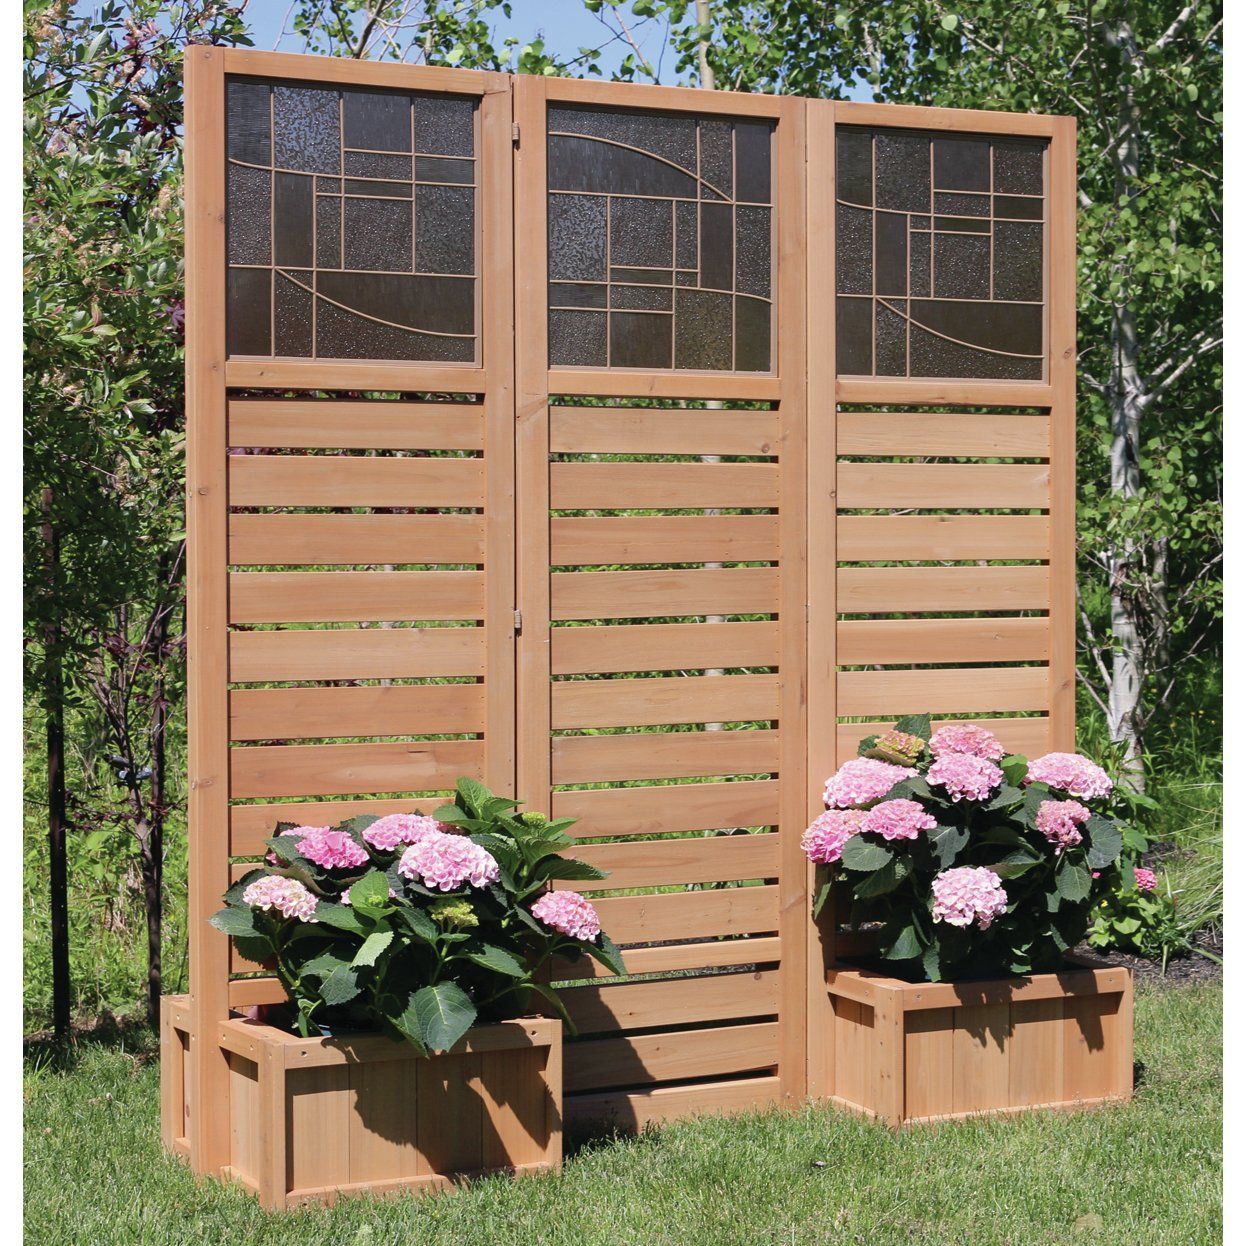 Yardistry Langdon Privacy Screen with Planters Patio